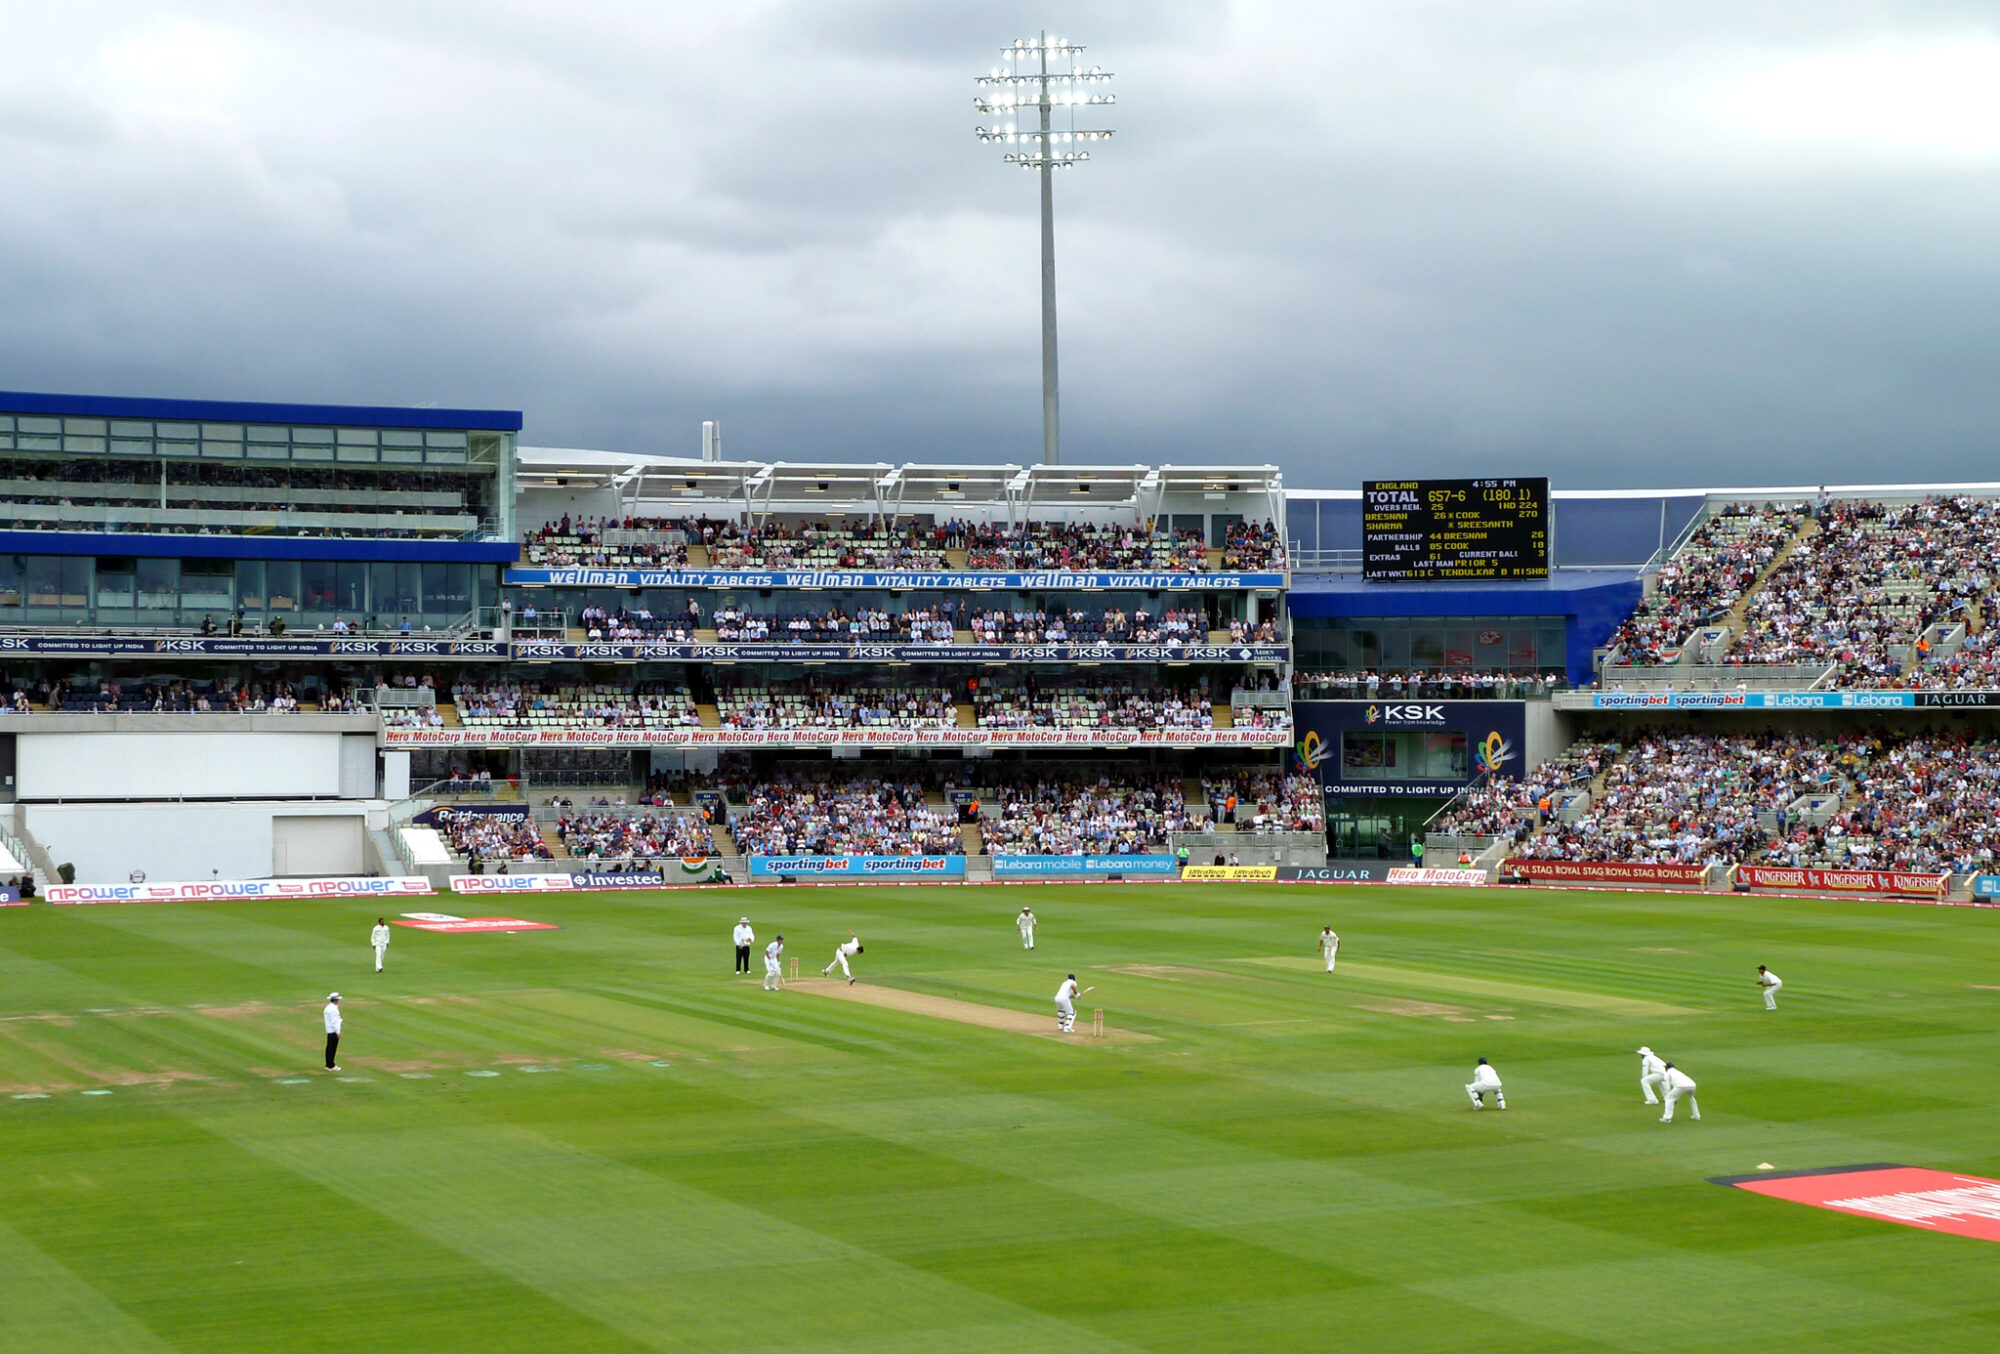 View from the north stand in Edgbaston Cricket Ground